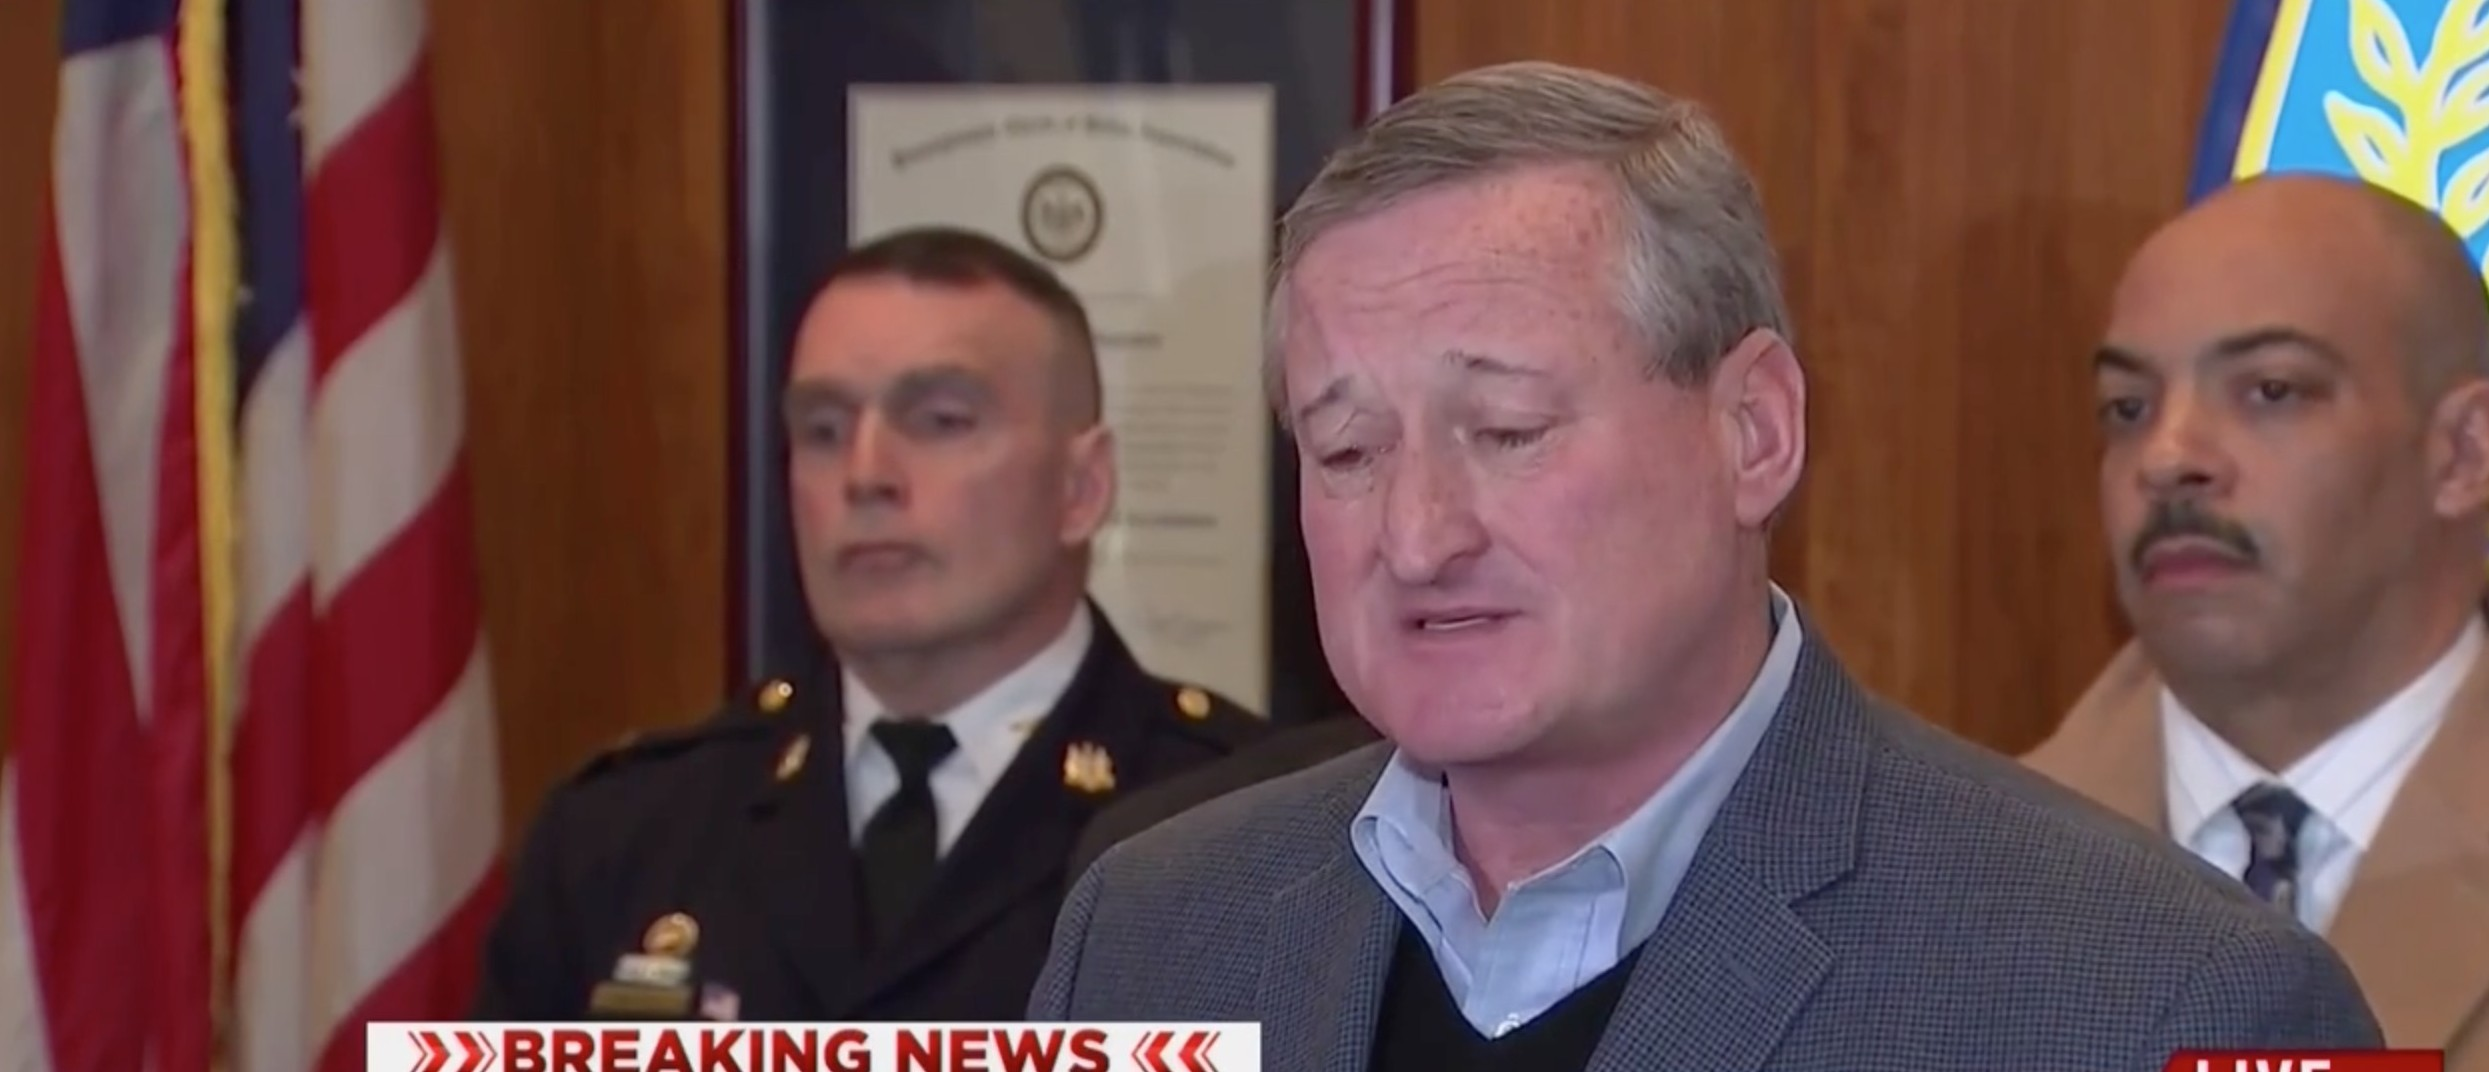 Philly Mayor: The Jihadist Who Shot A Police Officer Has 'Nothing To Do With Being A Muslim' [screen shot MSNBC]